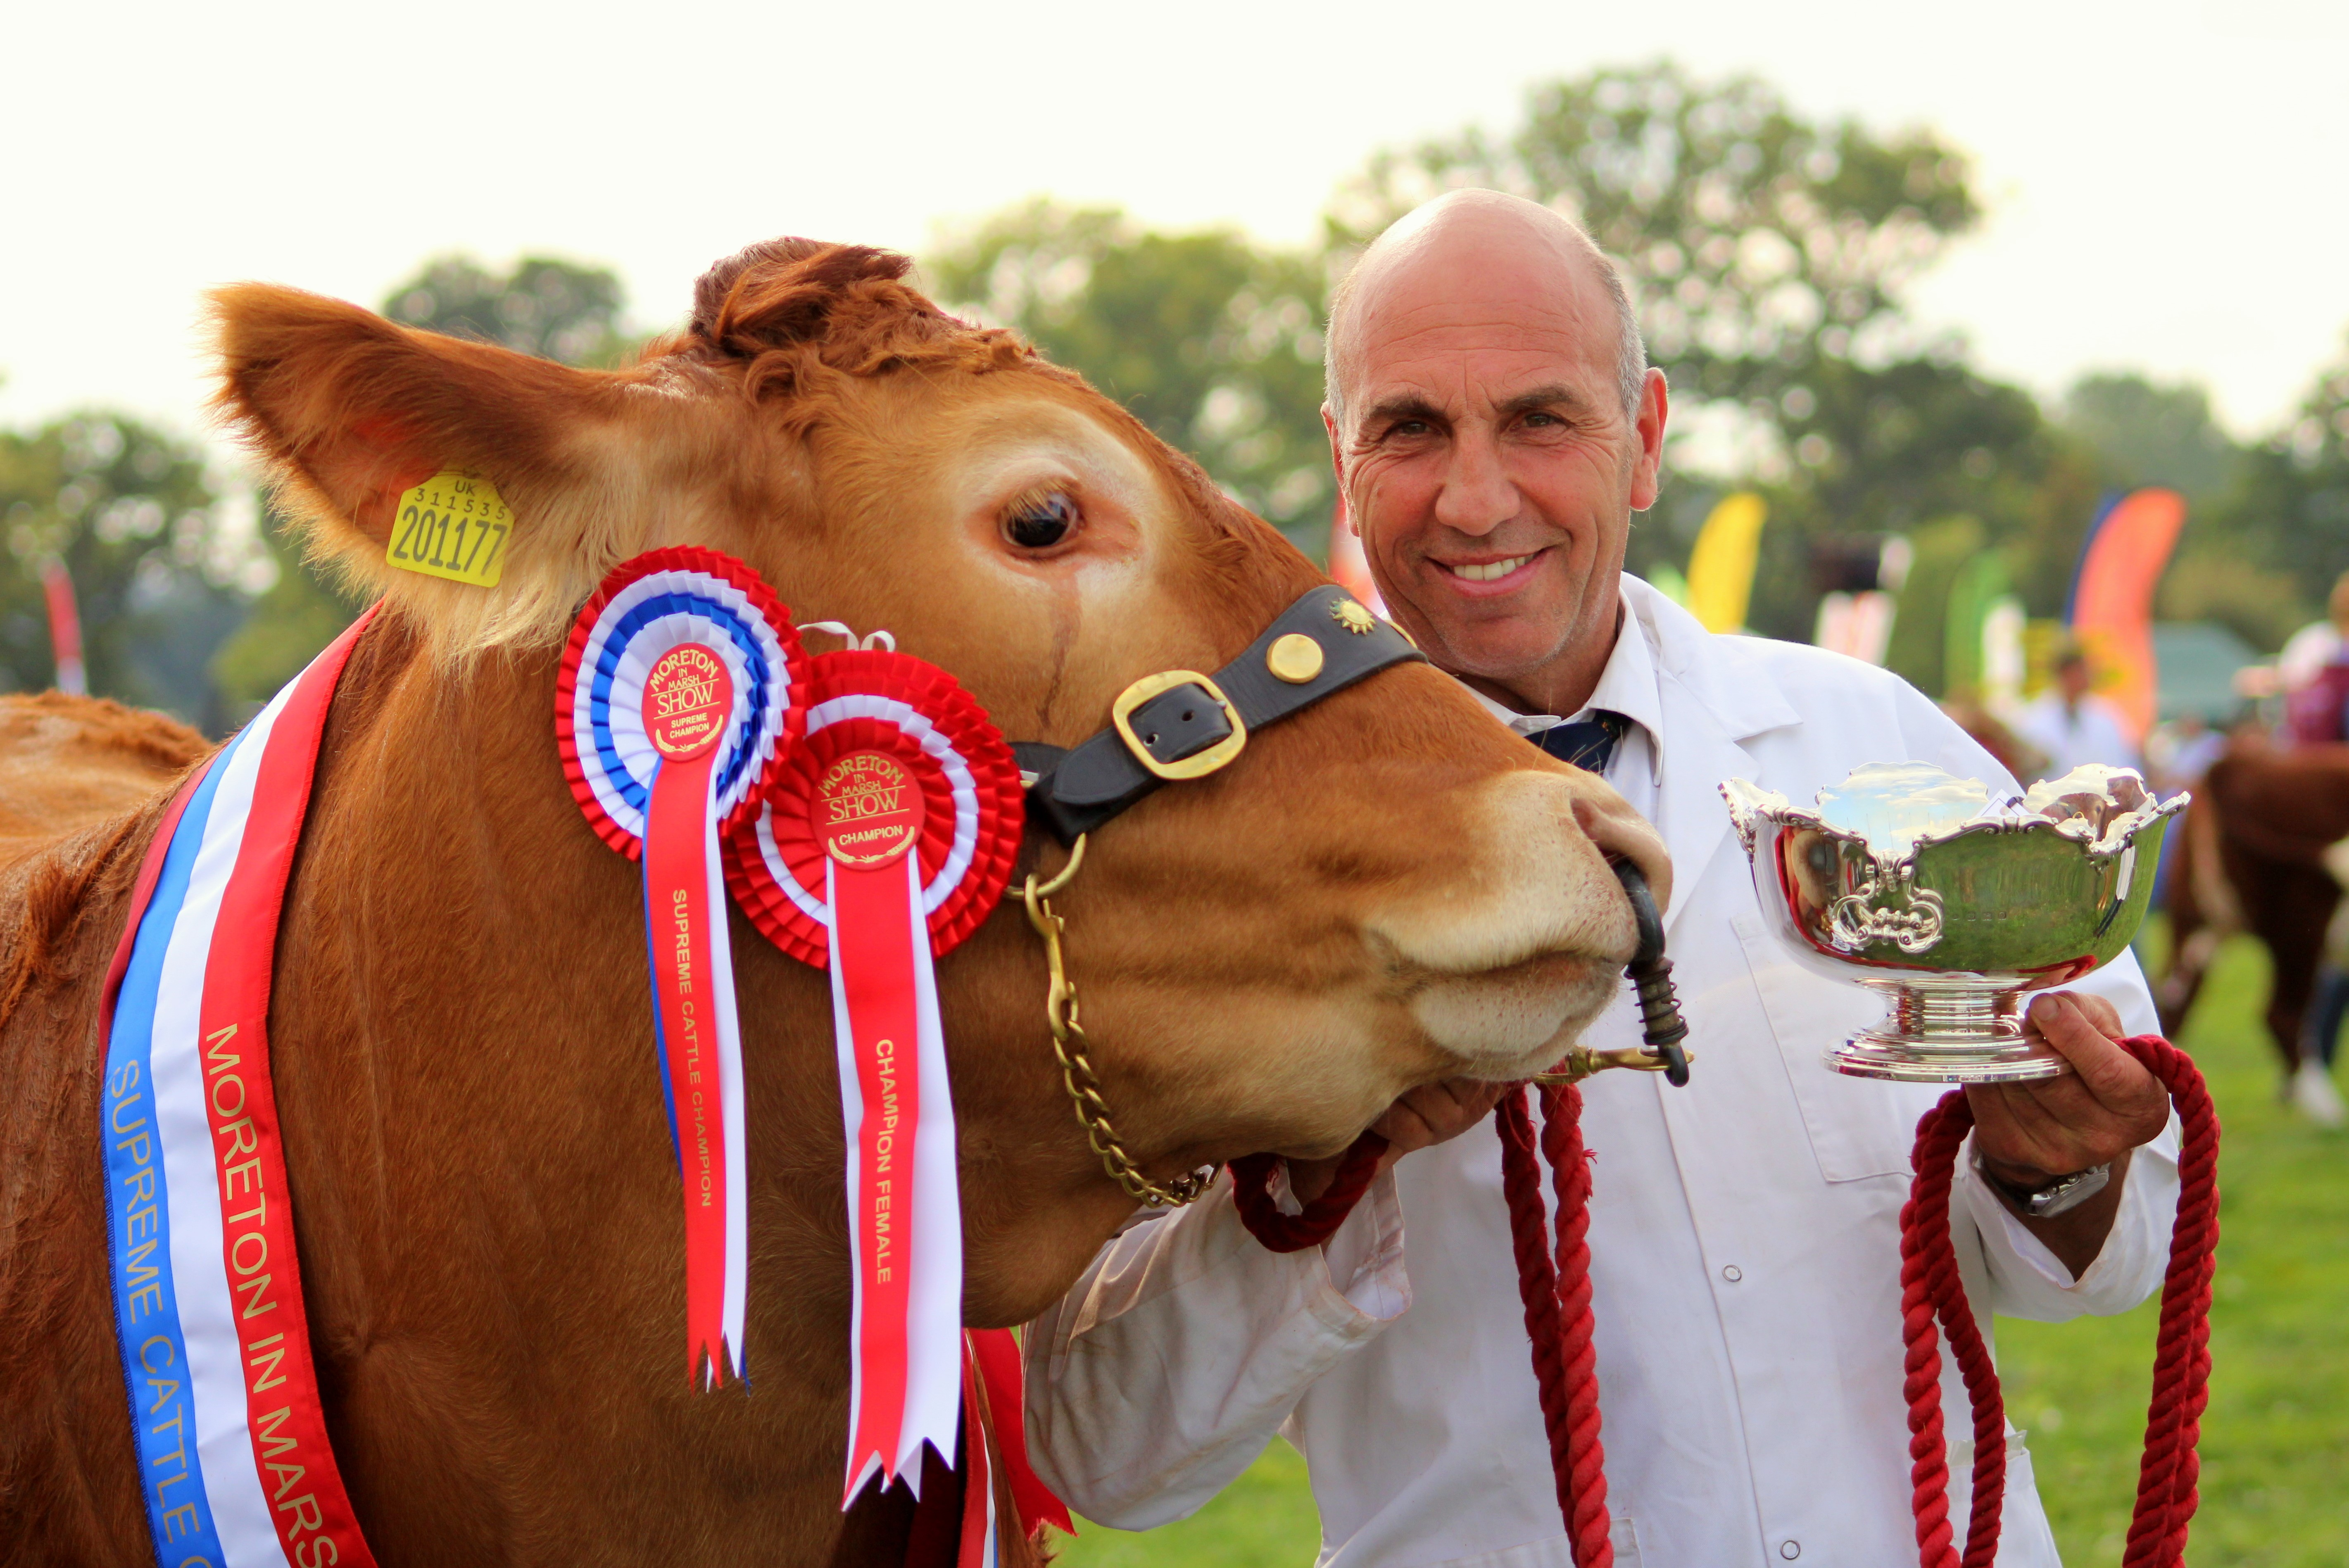 Dinmore Manor Estate farm manager, Richard Bartle with the Selekt Three Shires Trophy and the Supreme Cattle Champion, Dinmore Madonna